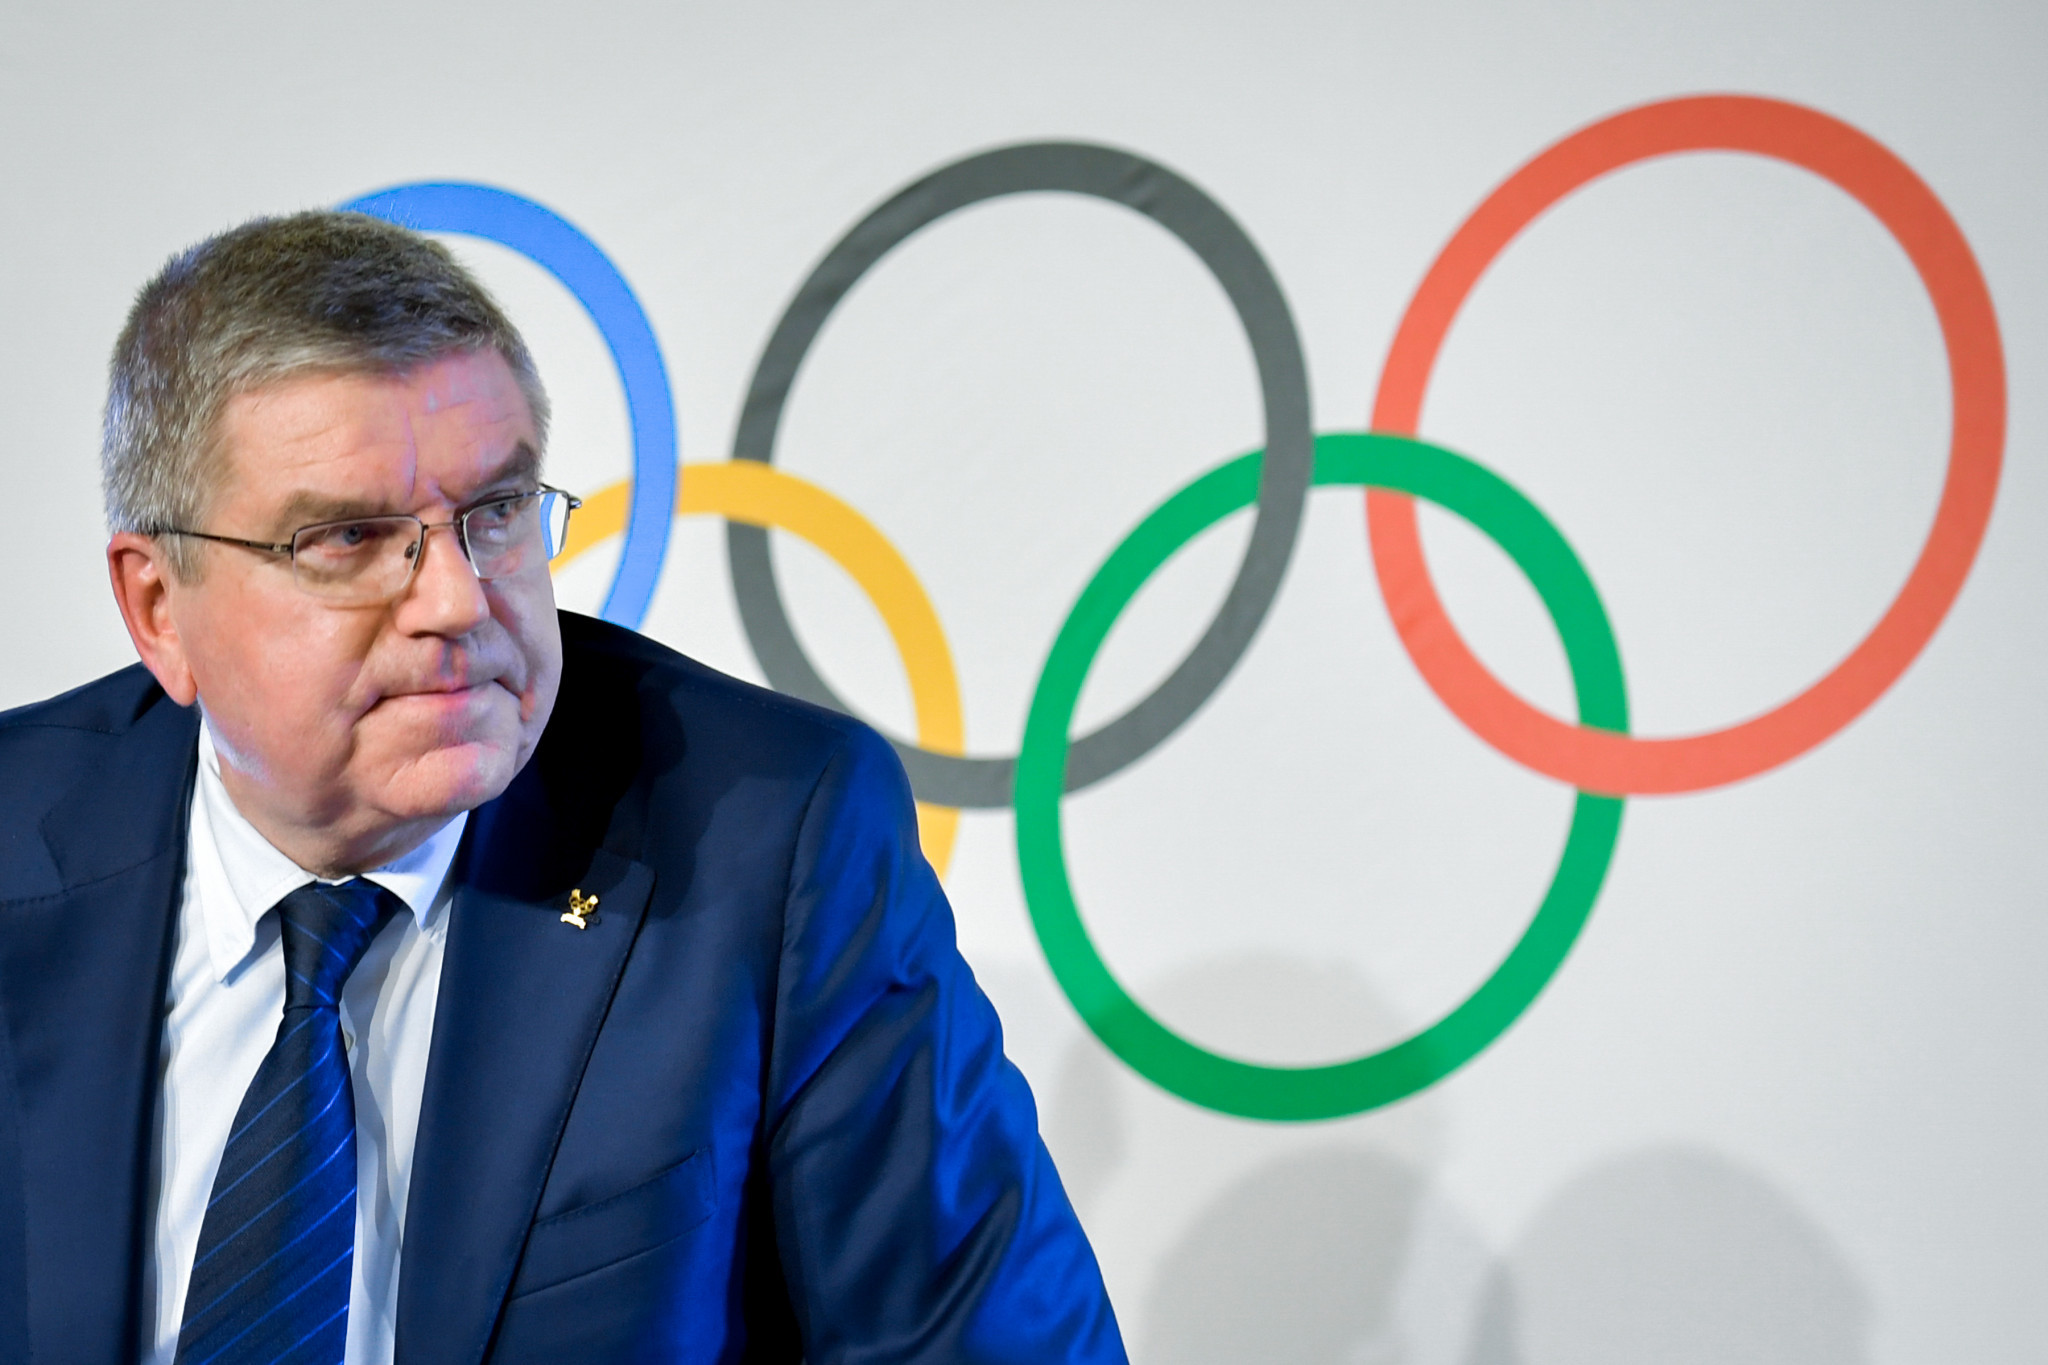 Thomas Bach, the IOC President, has defended the Russia ban ©Getty Images